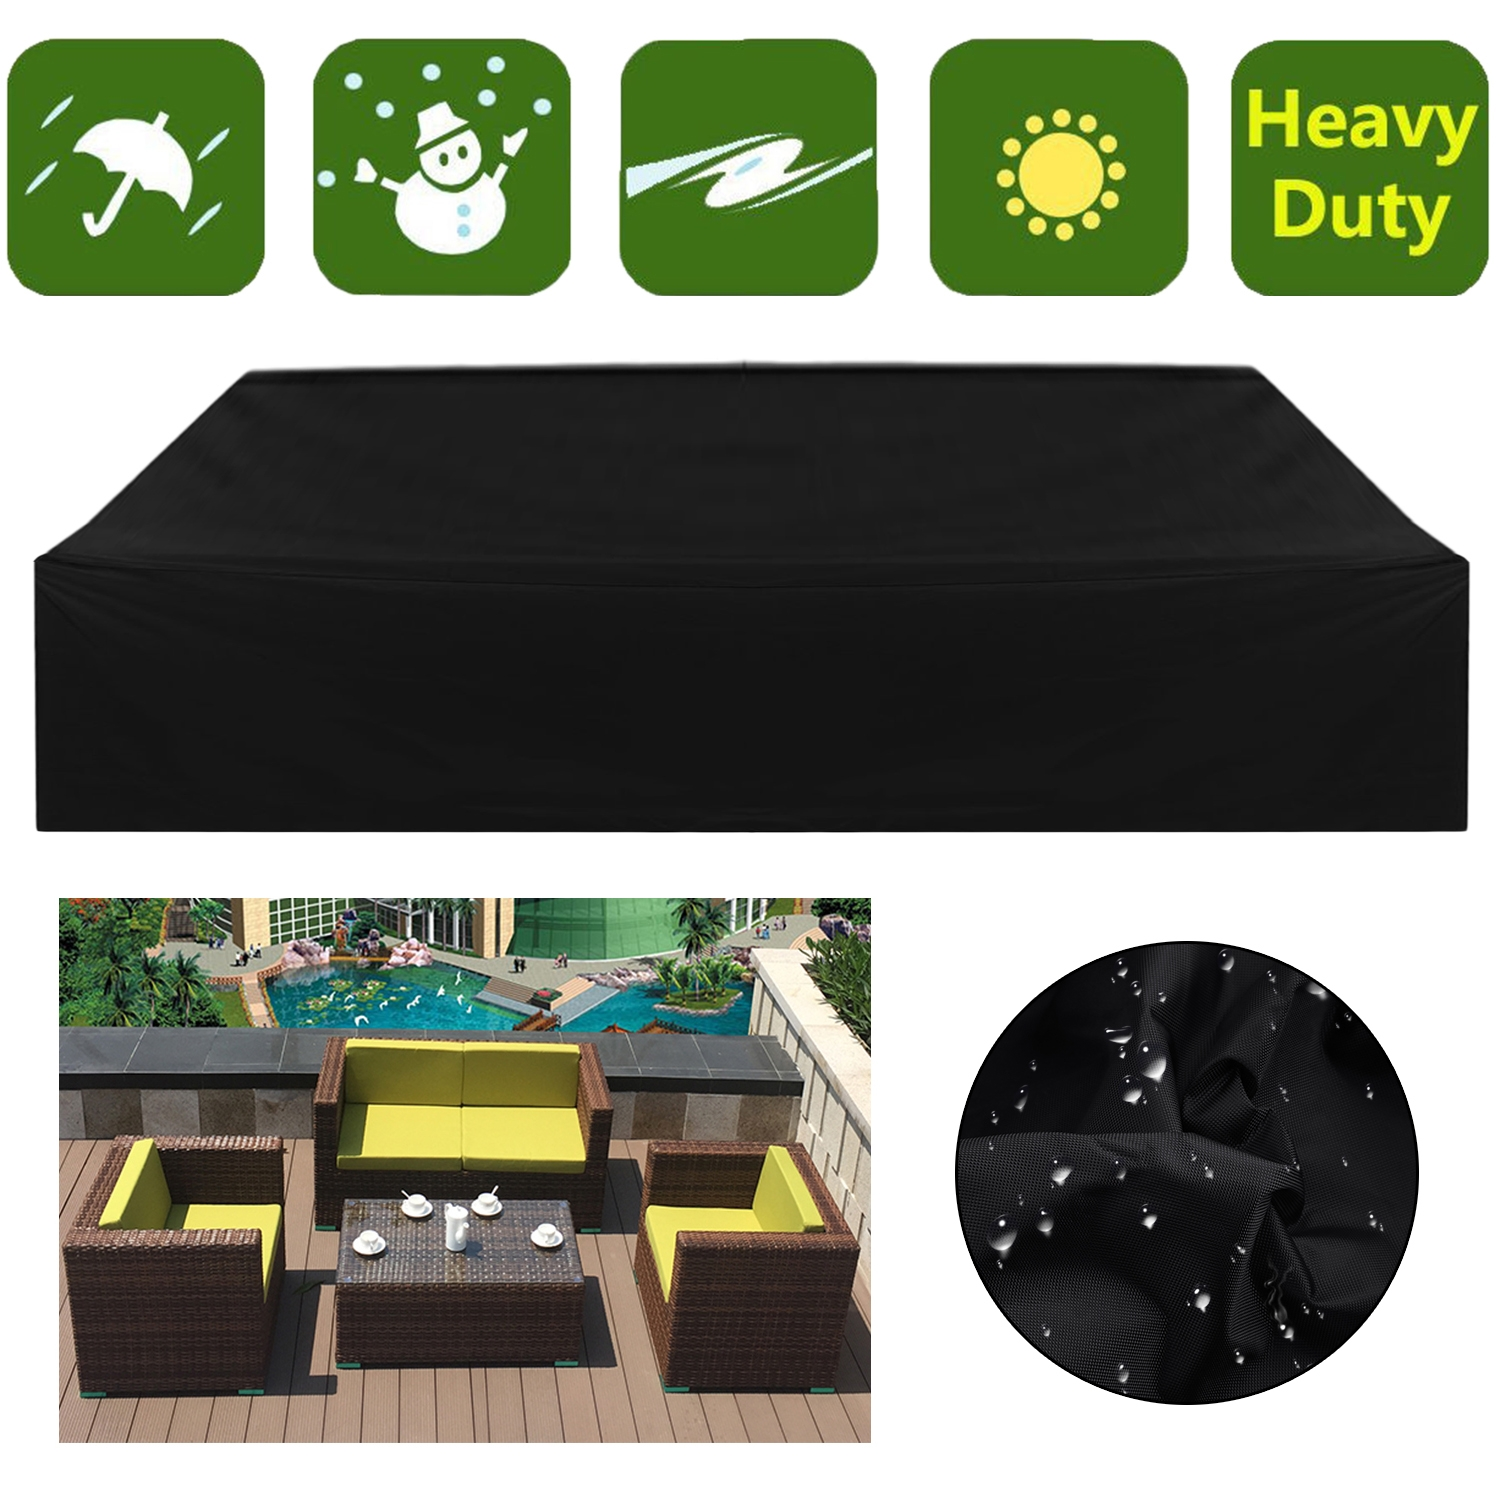 breathable garden furniture covers. CNMODLE Outdoor Furniture Rain Cover Patio Garden Wicker Sofa Set Dustcoat  Breathable Protective Accessories Breathable Garden Furniture Covers T